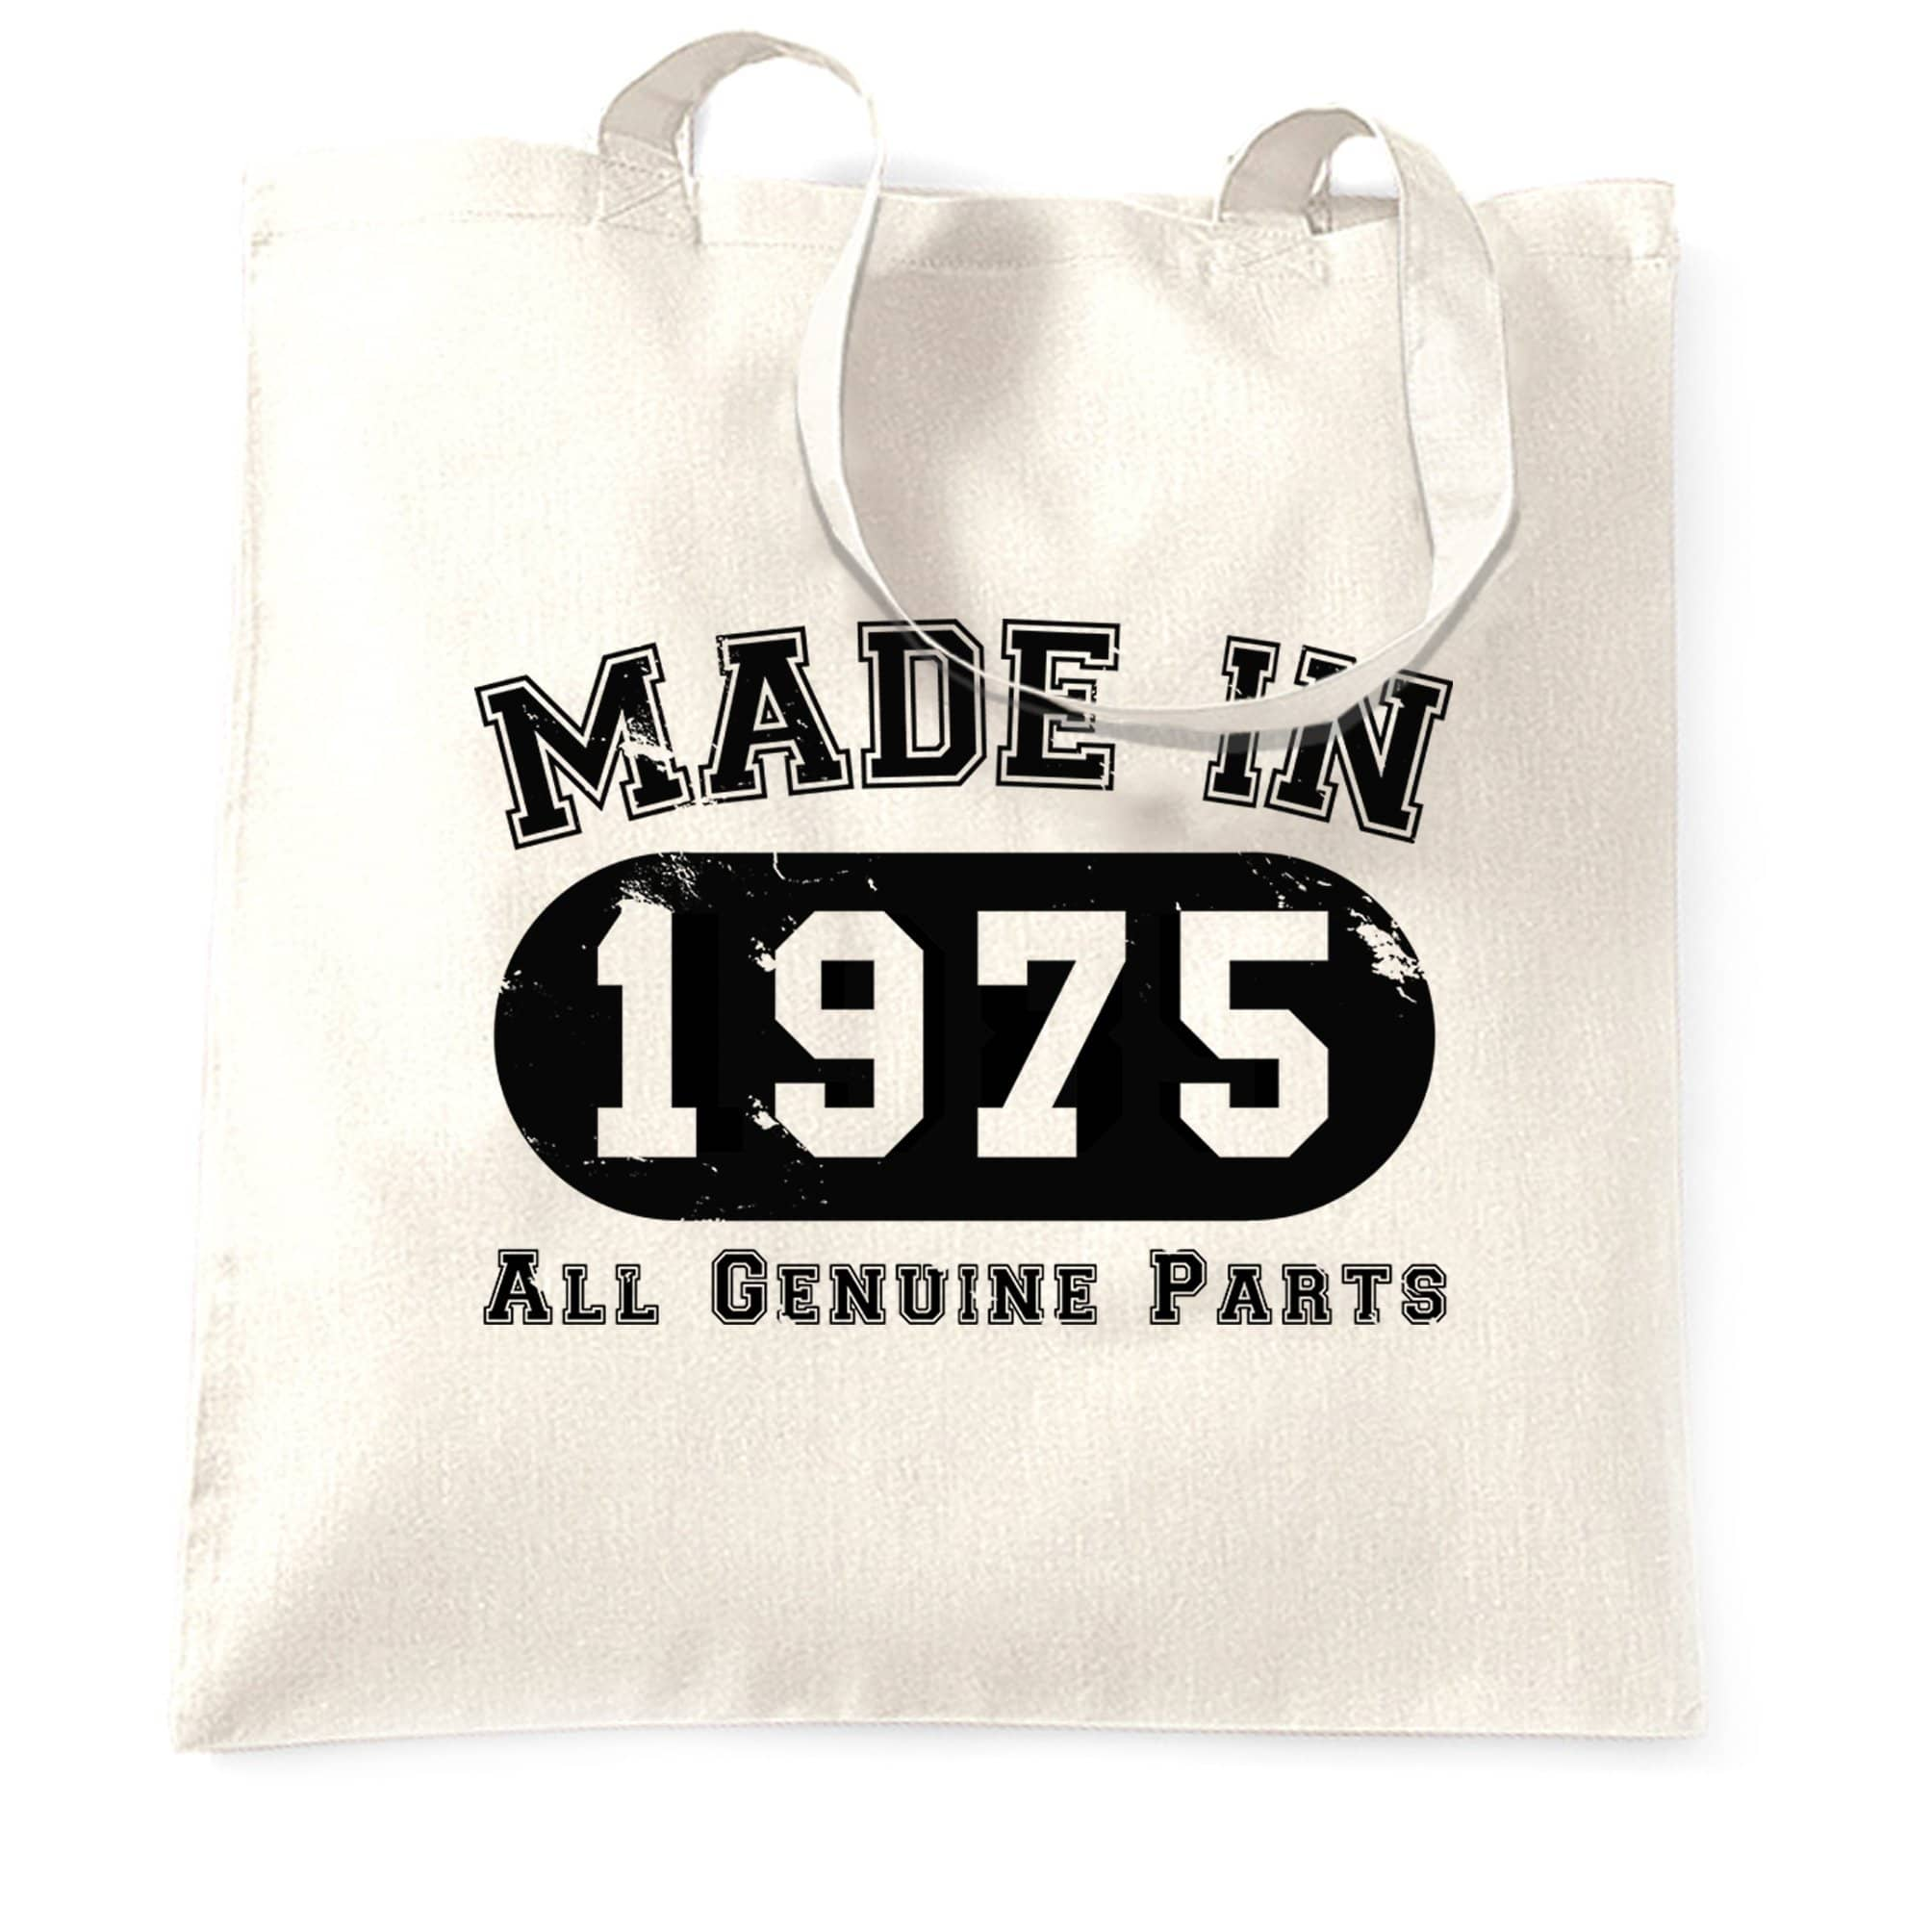 Birthday Tote Bag Made in 1975 All Genuine Parts